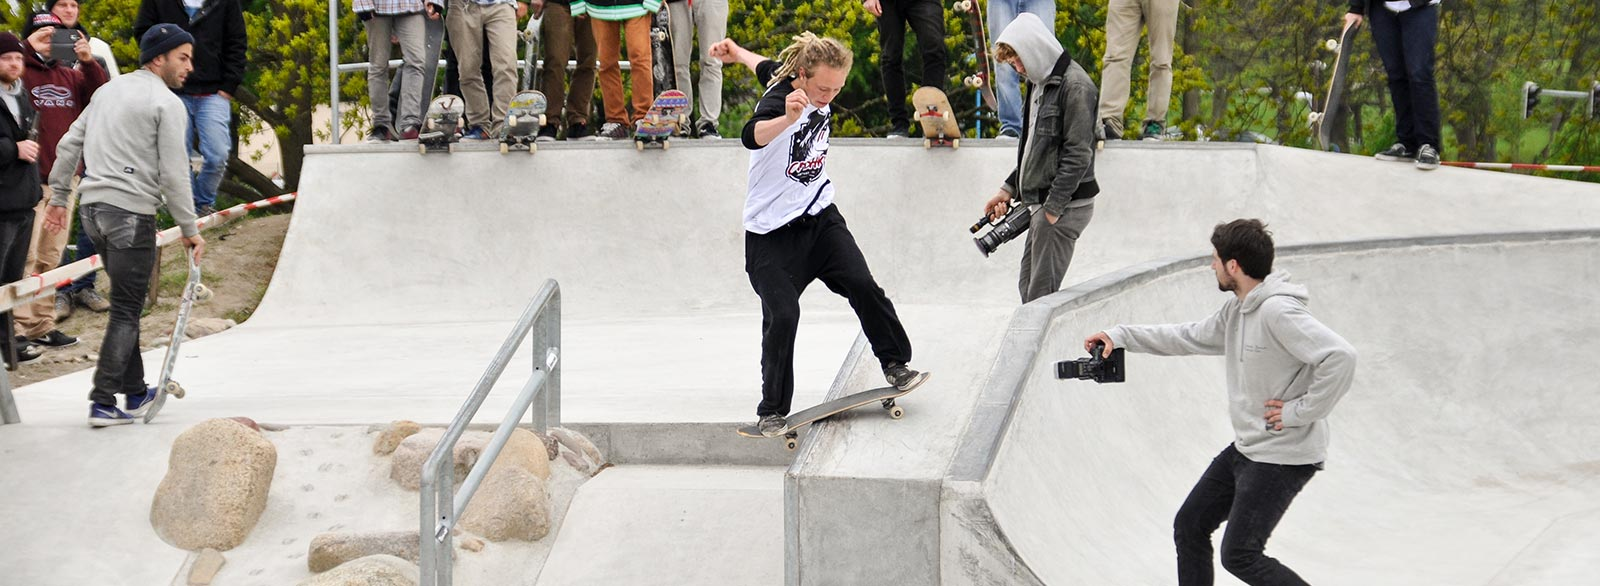 slider_start_ruegen_skateboarden_21